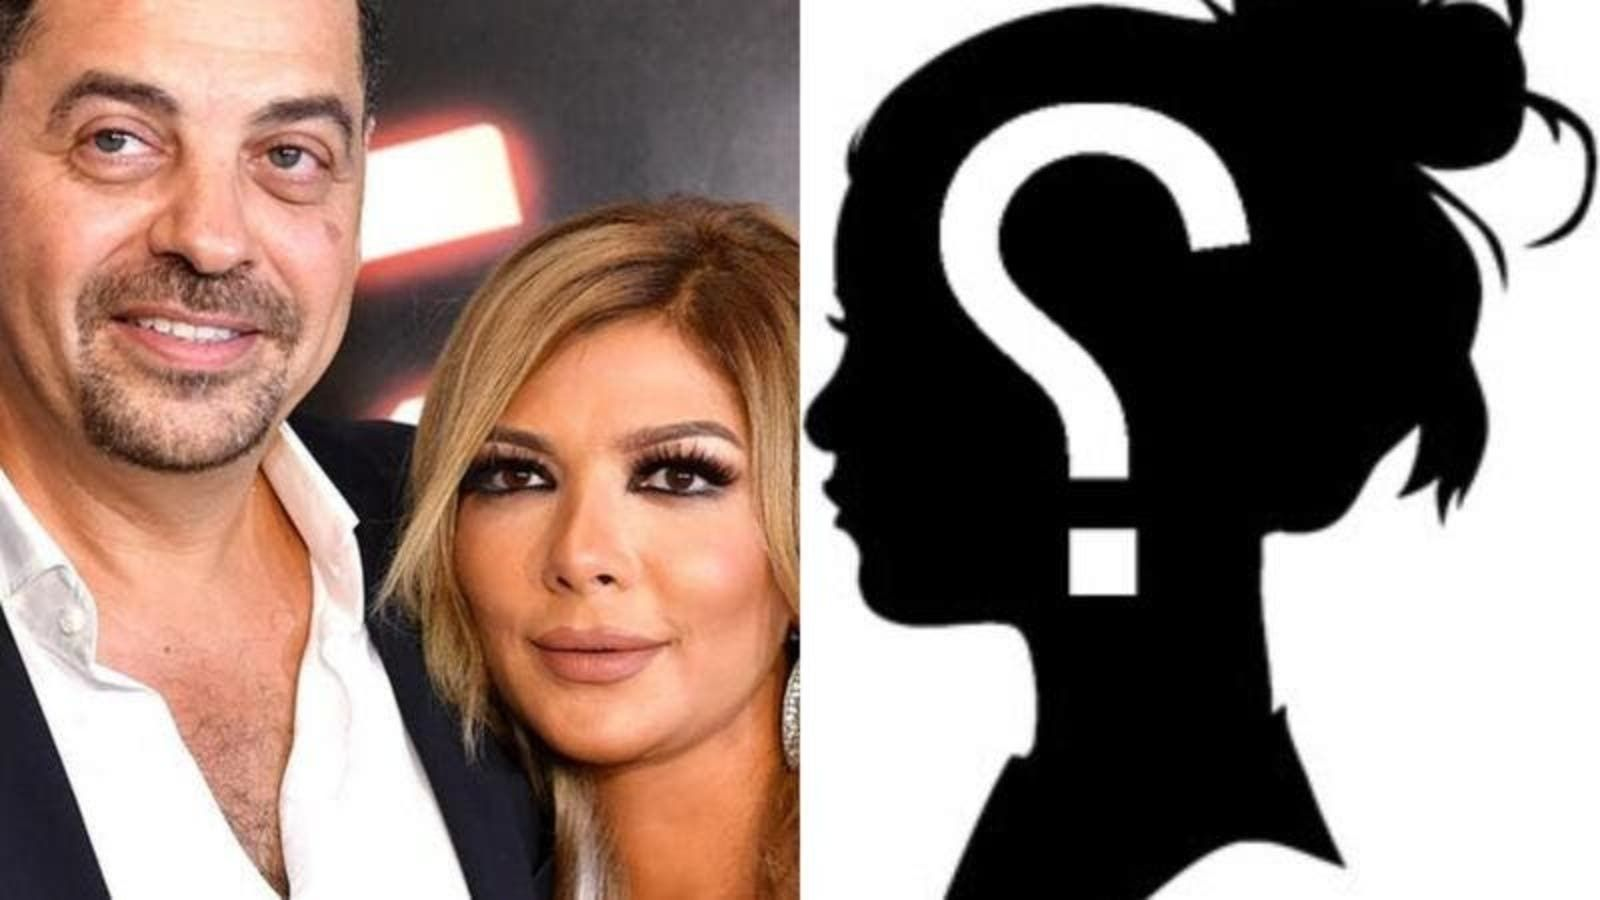 Assala Vs The Other Woman Tarek Alarian S Mistress Identity Revealed A Hottie In Her 20 S Pictures Mistress Singer Latest Music Videos